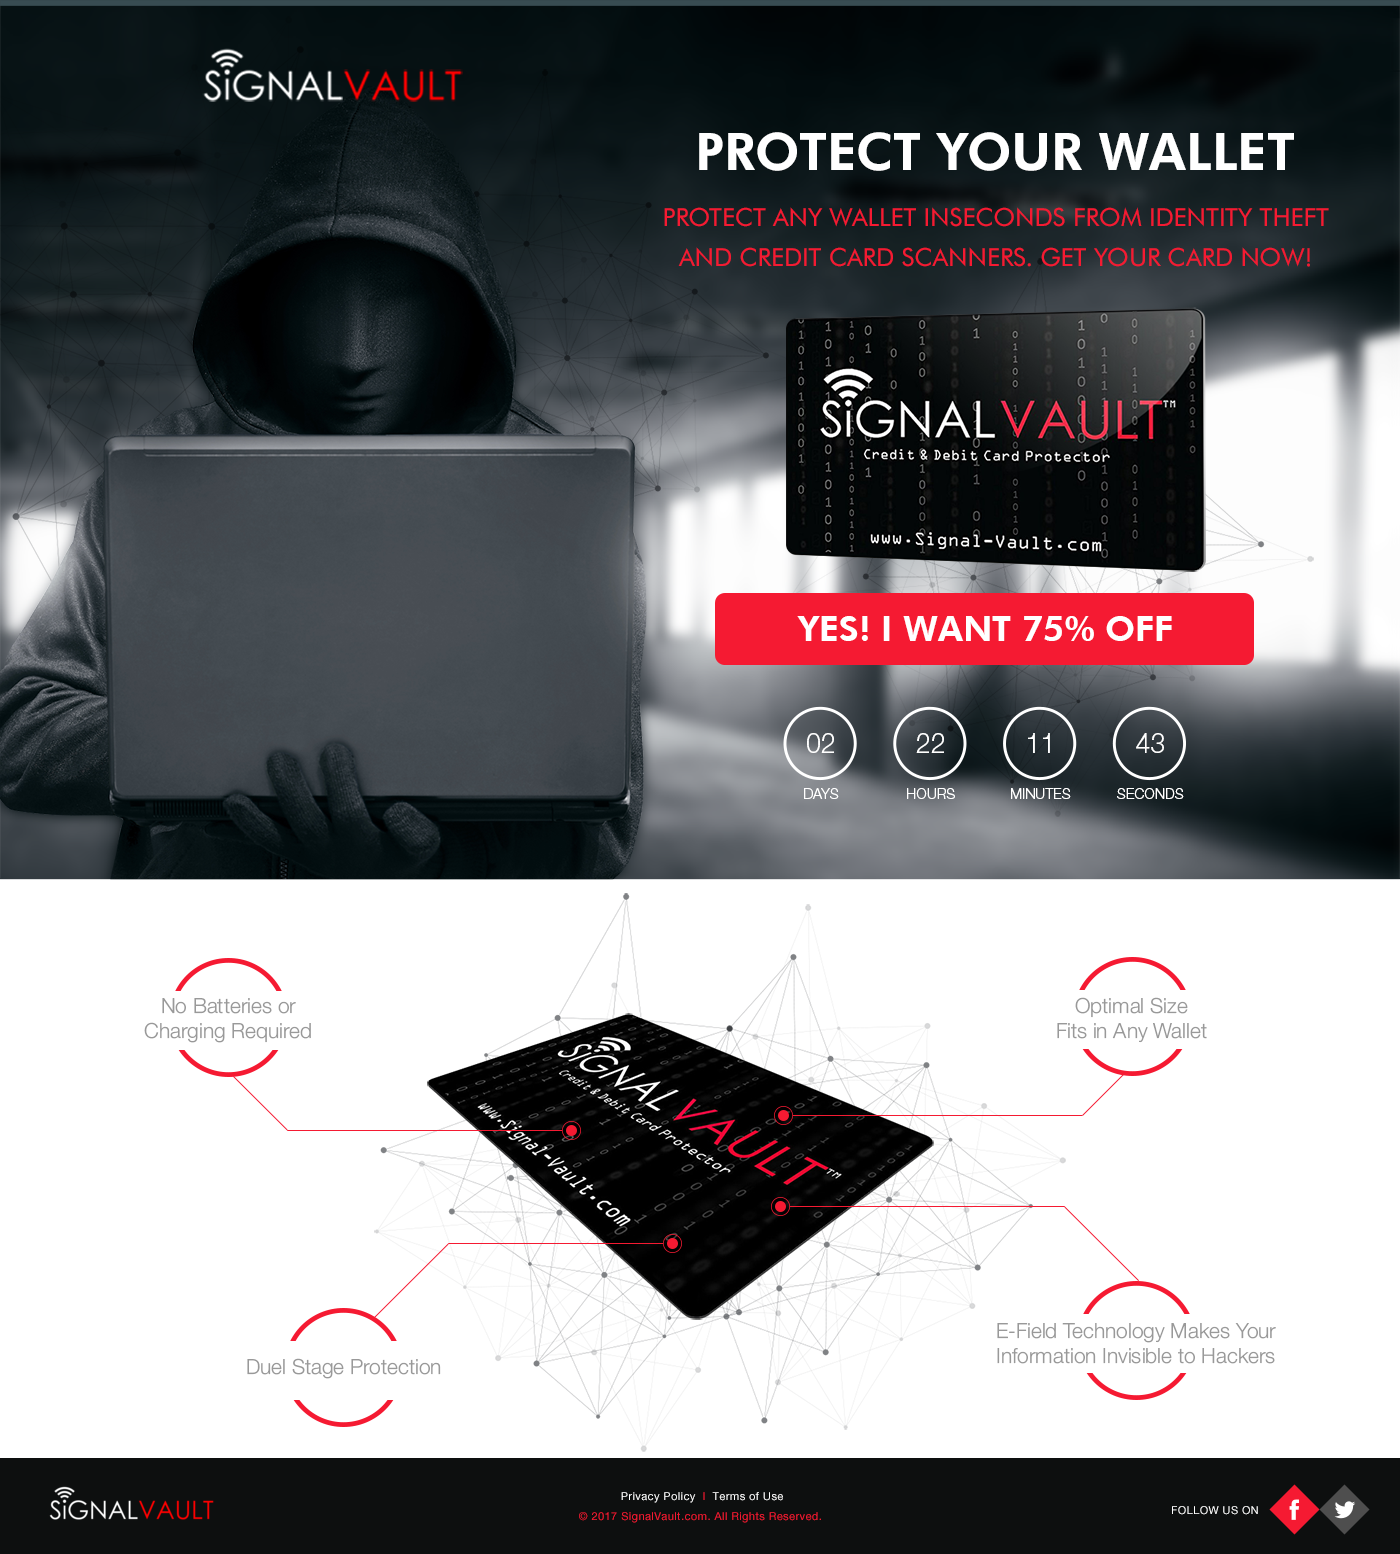 security protection safety hacker virus device crdit card black and red BLACK &RED